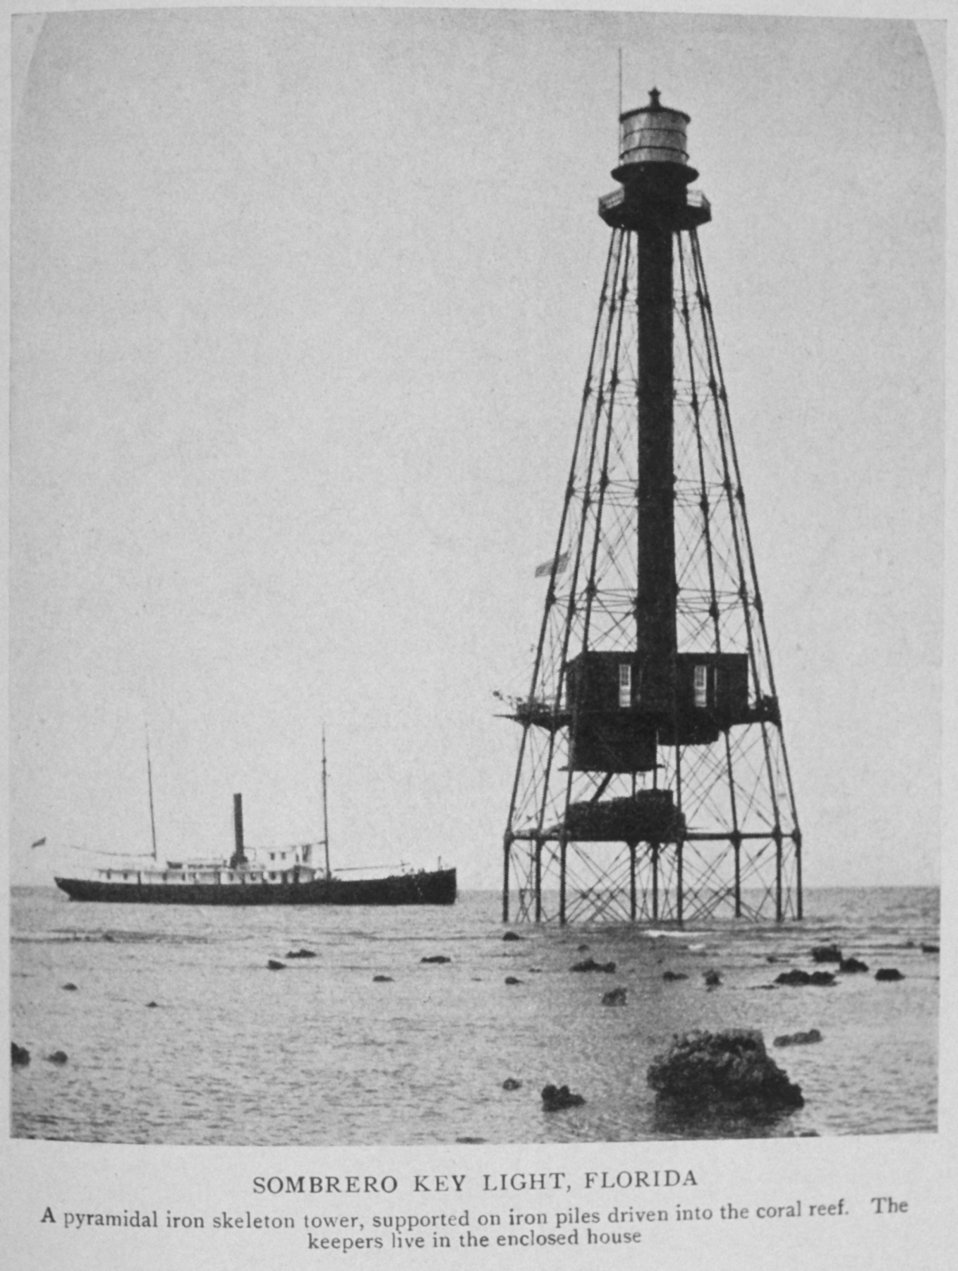 Sombrero Key Light, Florida.  A pyramidal iron skeletal tower, supported on iron piles driven into the coral reef.  The keepers live in the enclosed house. In: 'Lighthouses and Lightships of the United States' by George R. Putnam,  1917.  Houghton Miff